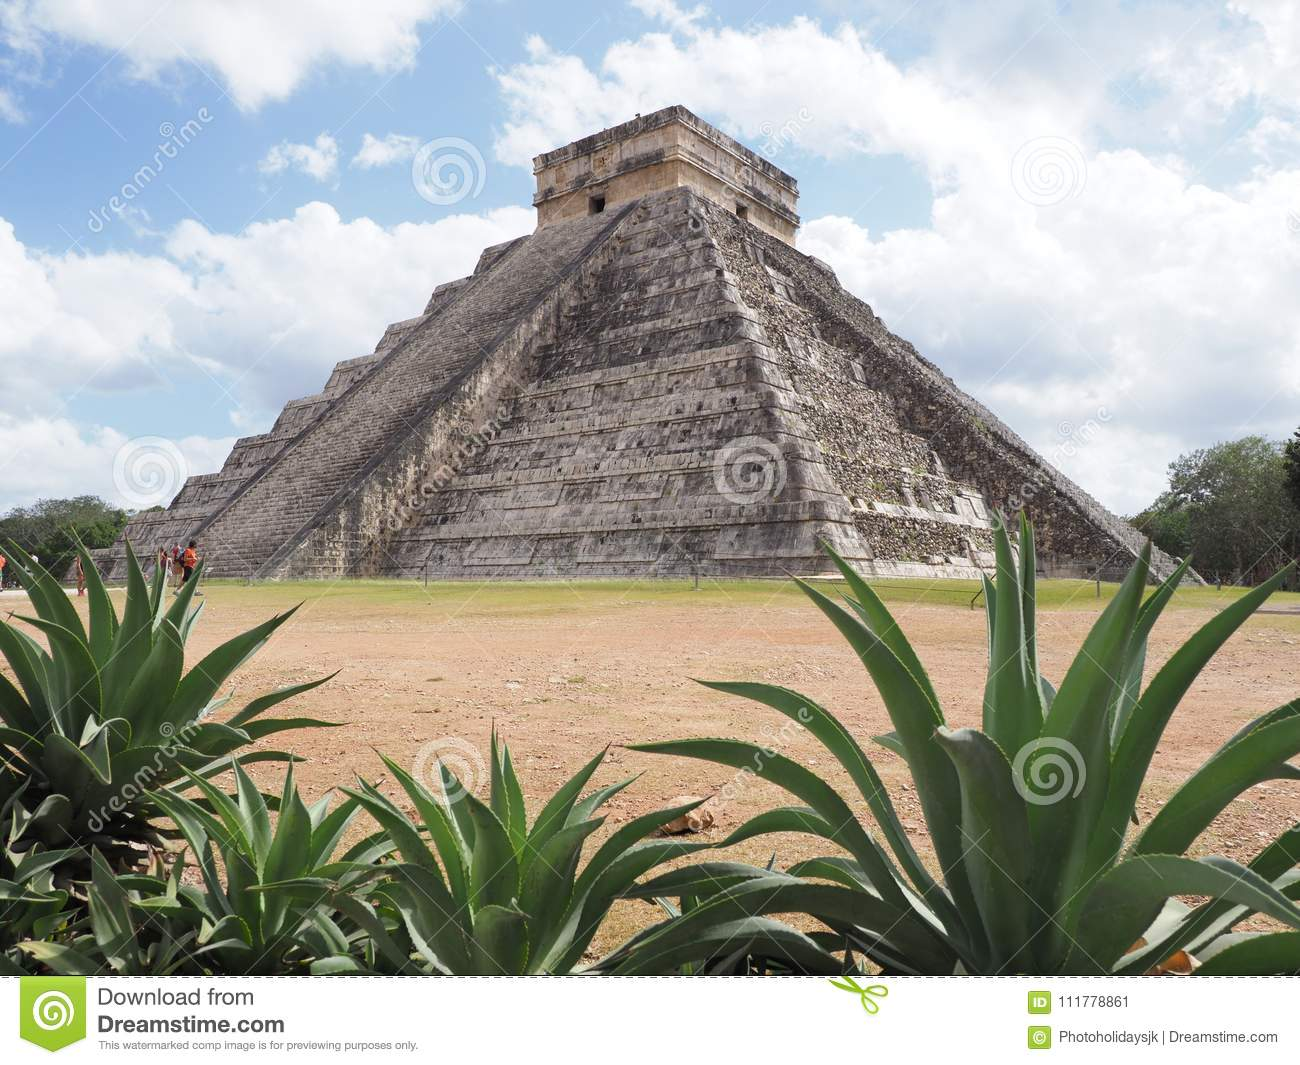 Pyramid and agaves in Chichen Itza mayan town in Mexico